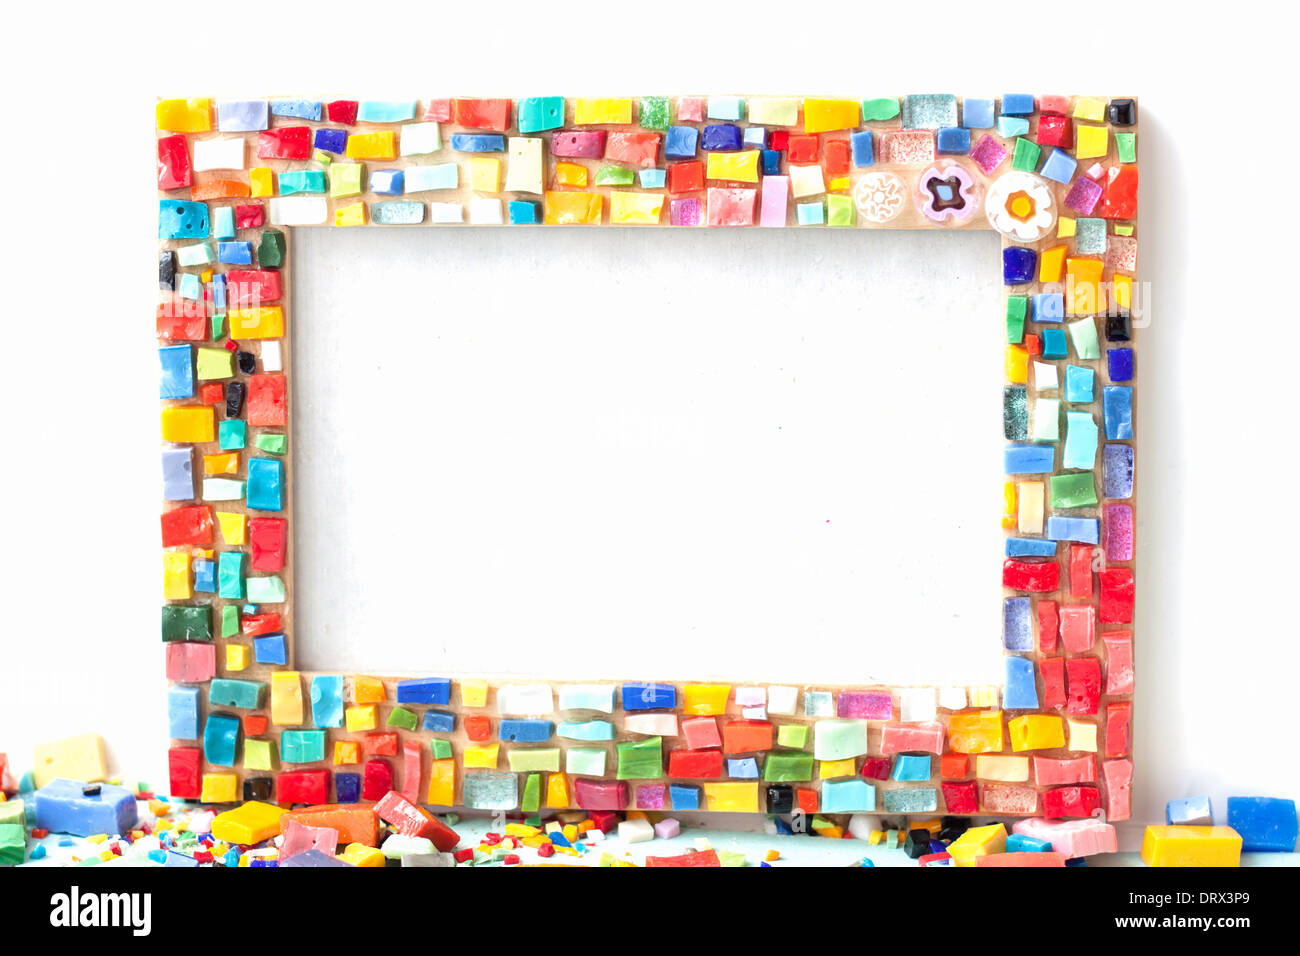 frame mosaic crafts hobby handmade colorful [isolated on white ...